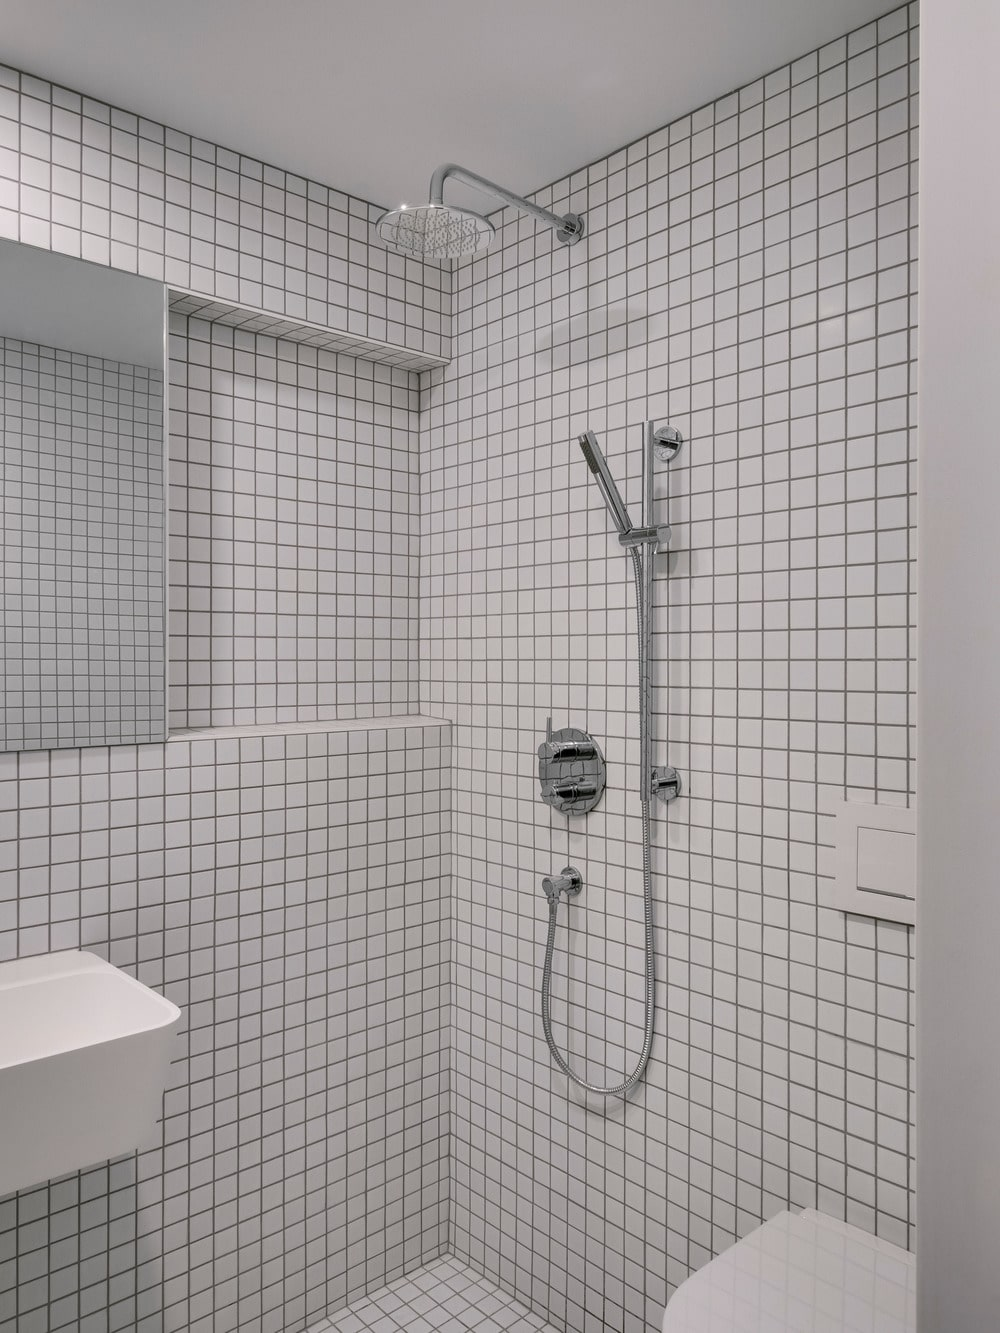 The bathroom has small white tiles on its walls that pair well with the floating sink and the toilet along with the fixtures of the shower area.